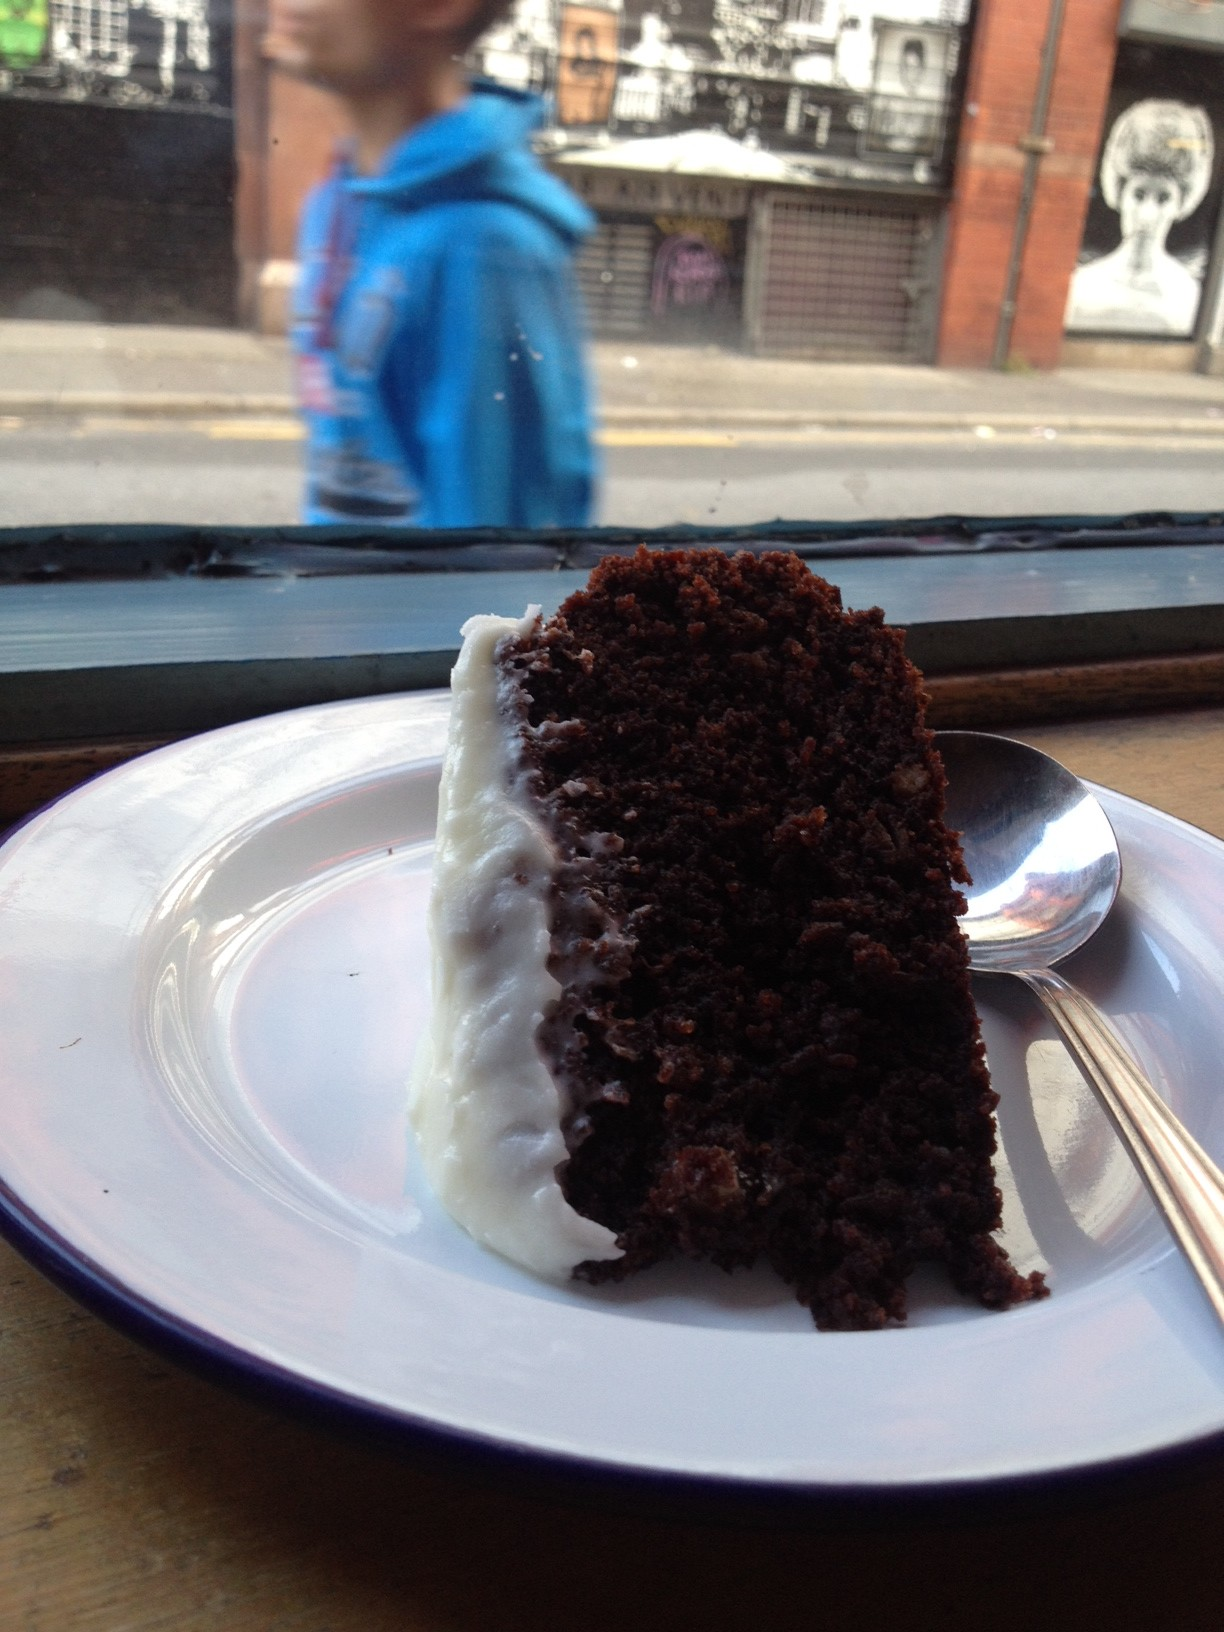 soup kitchen cake, soup kitchen manchester, guinness cake recipe